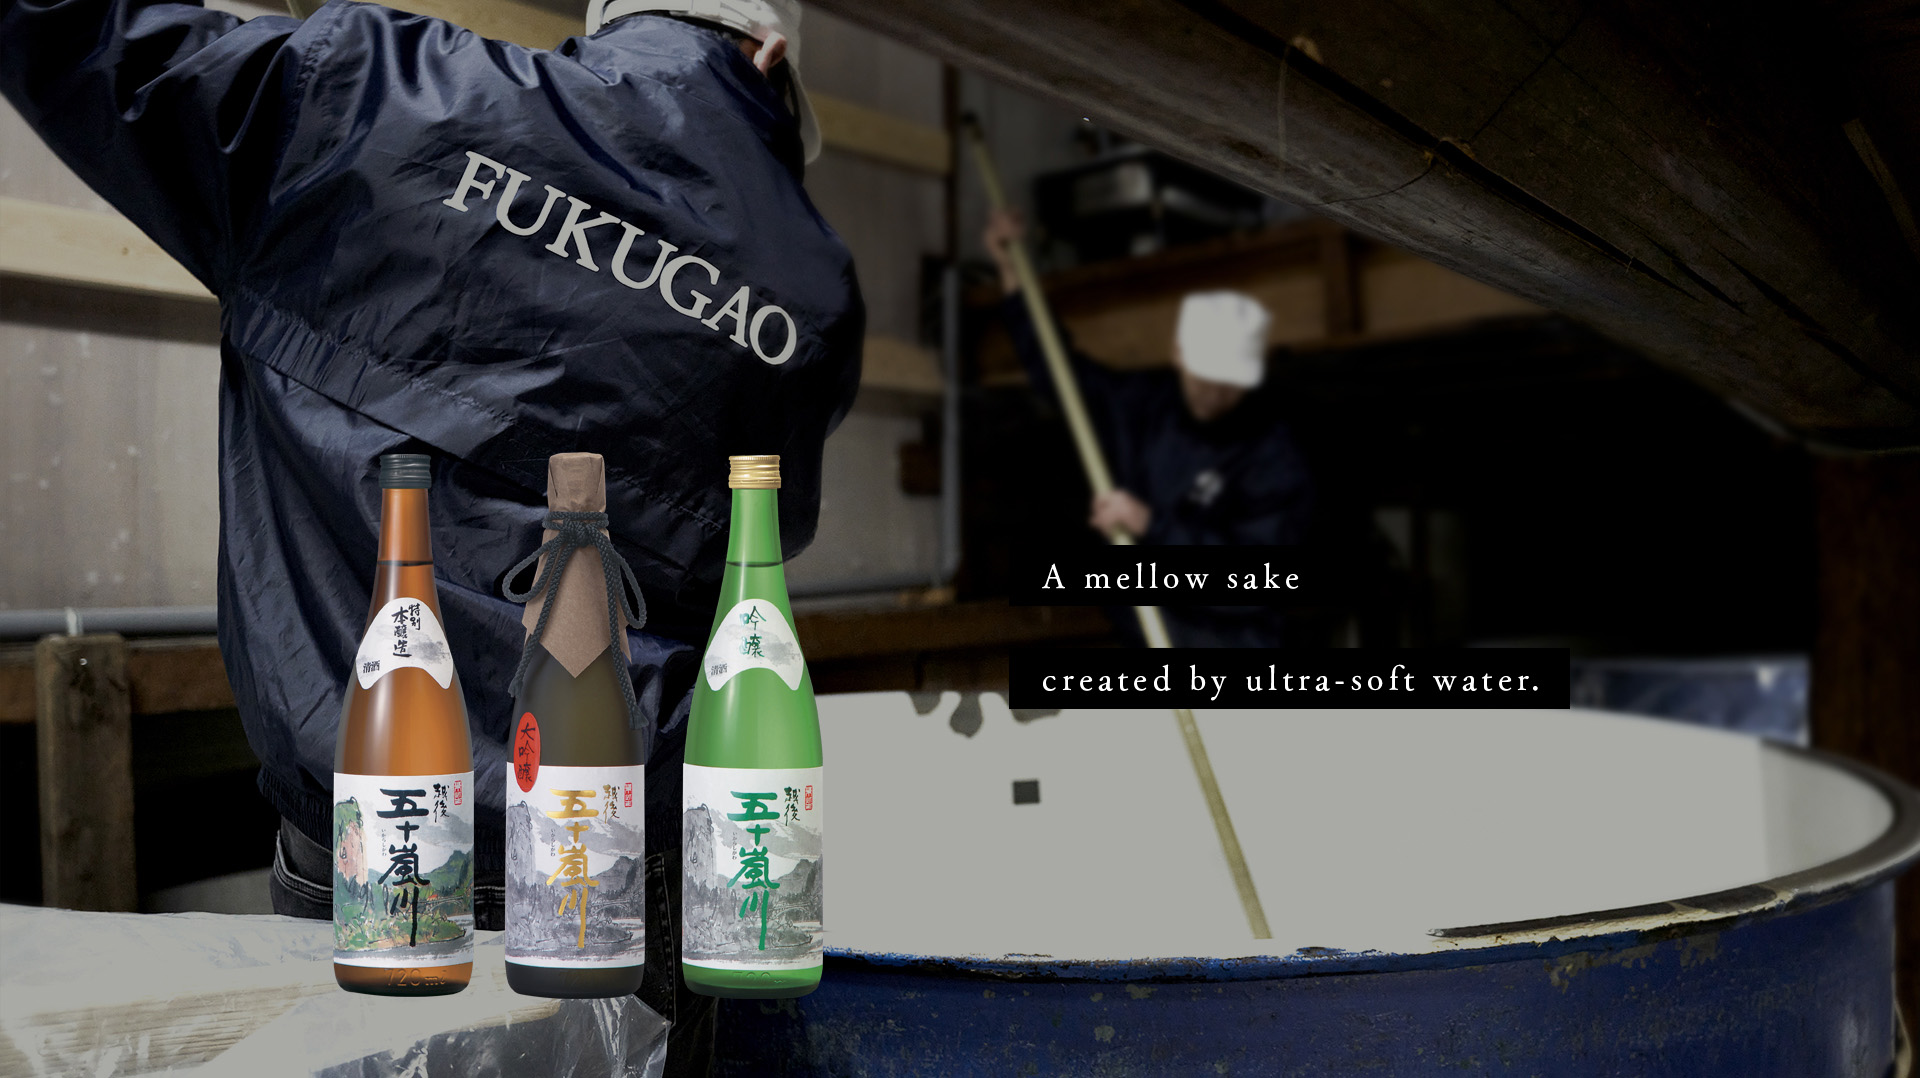 A mellow sake created by ultra-soft water.